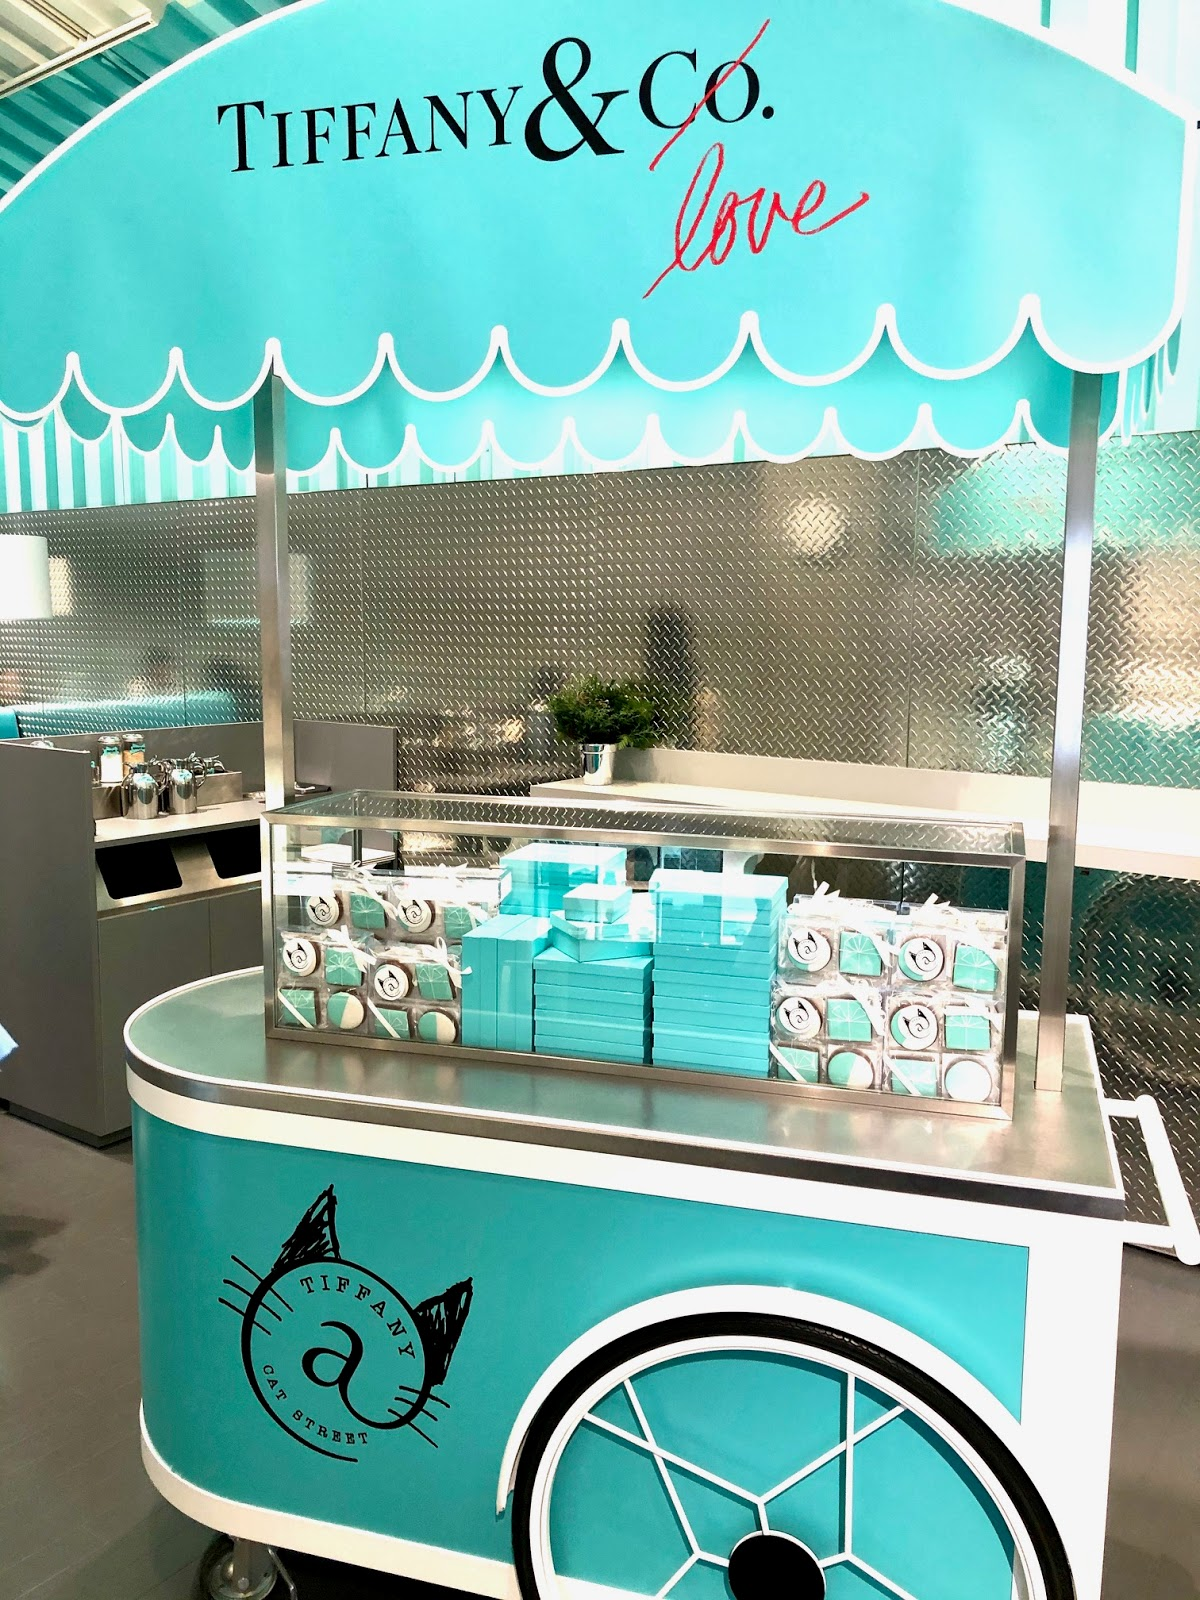 Tiffany & Co Cafe Japan